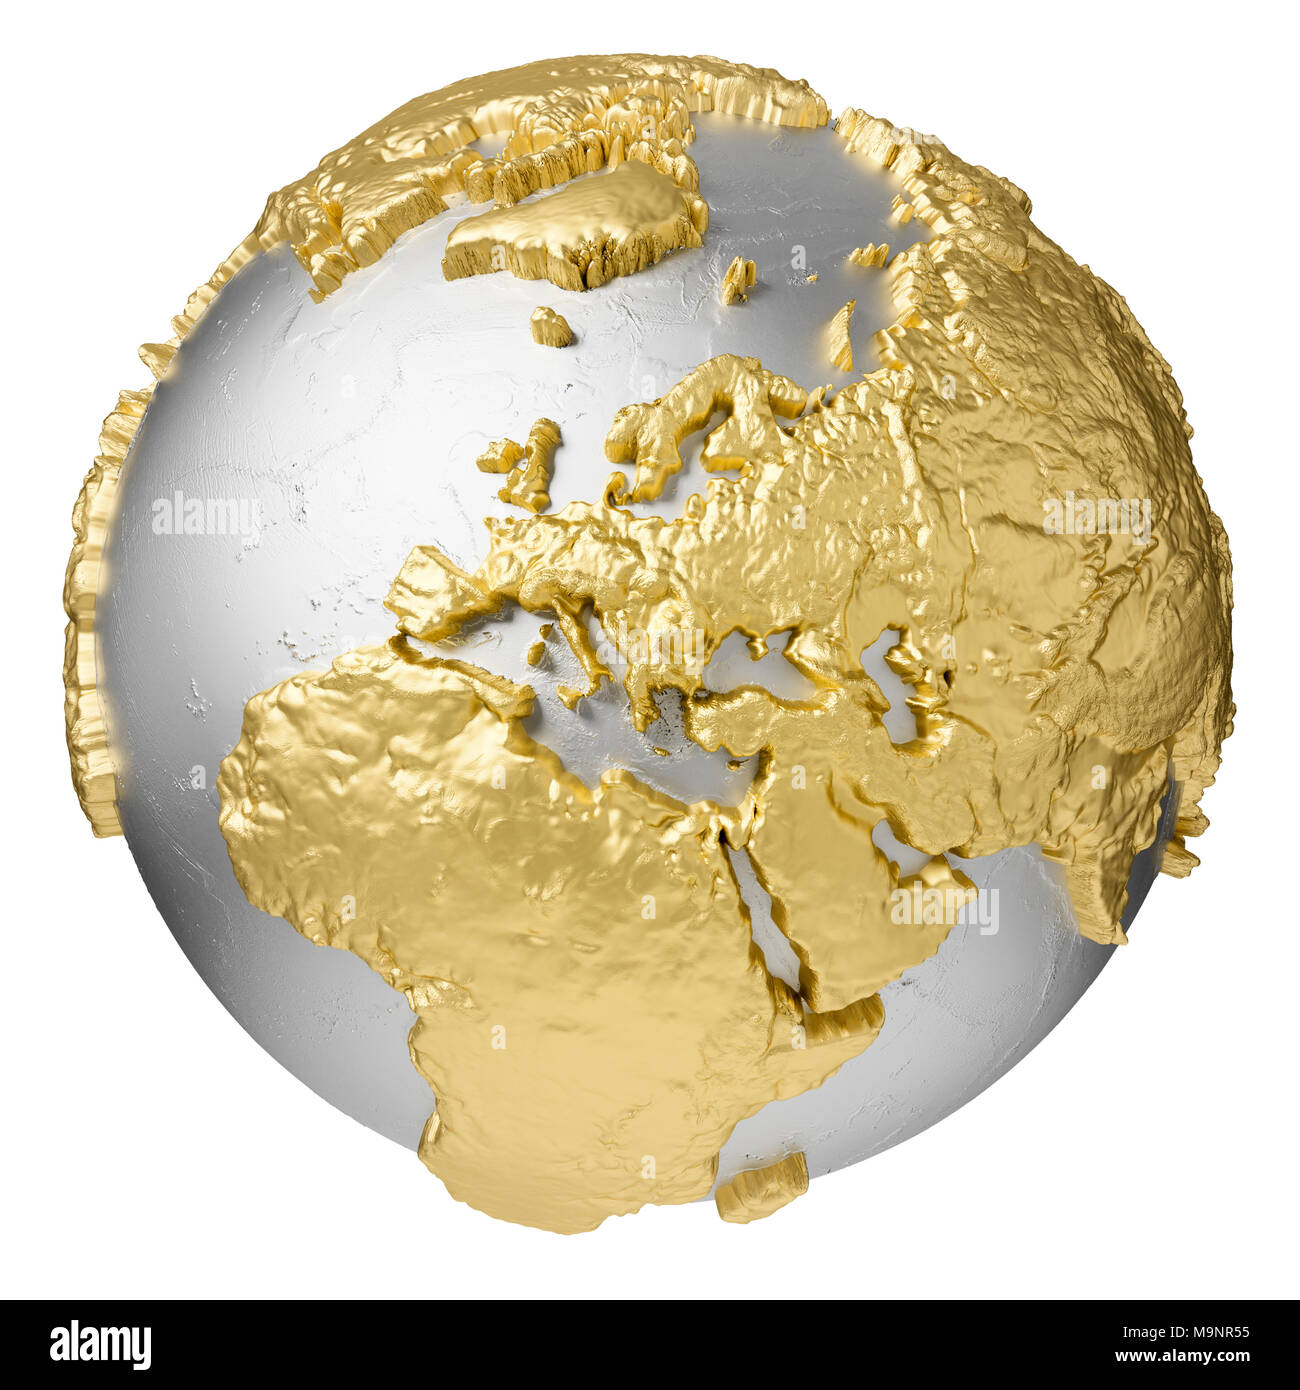 Gold world map 3d isolated cut out stock images pictures alamy gold silver globe without water europe 3d rendering isolated on white background gumiabroncs Image collections